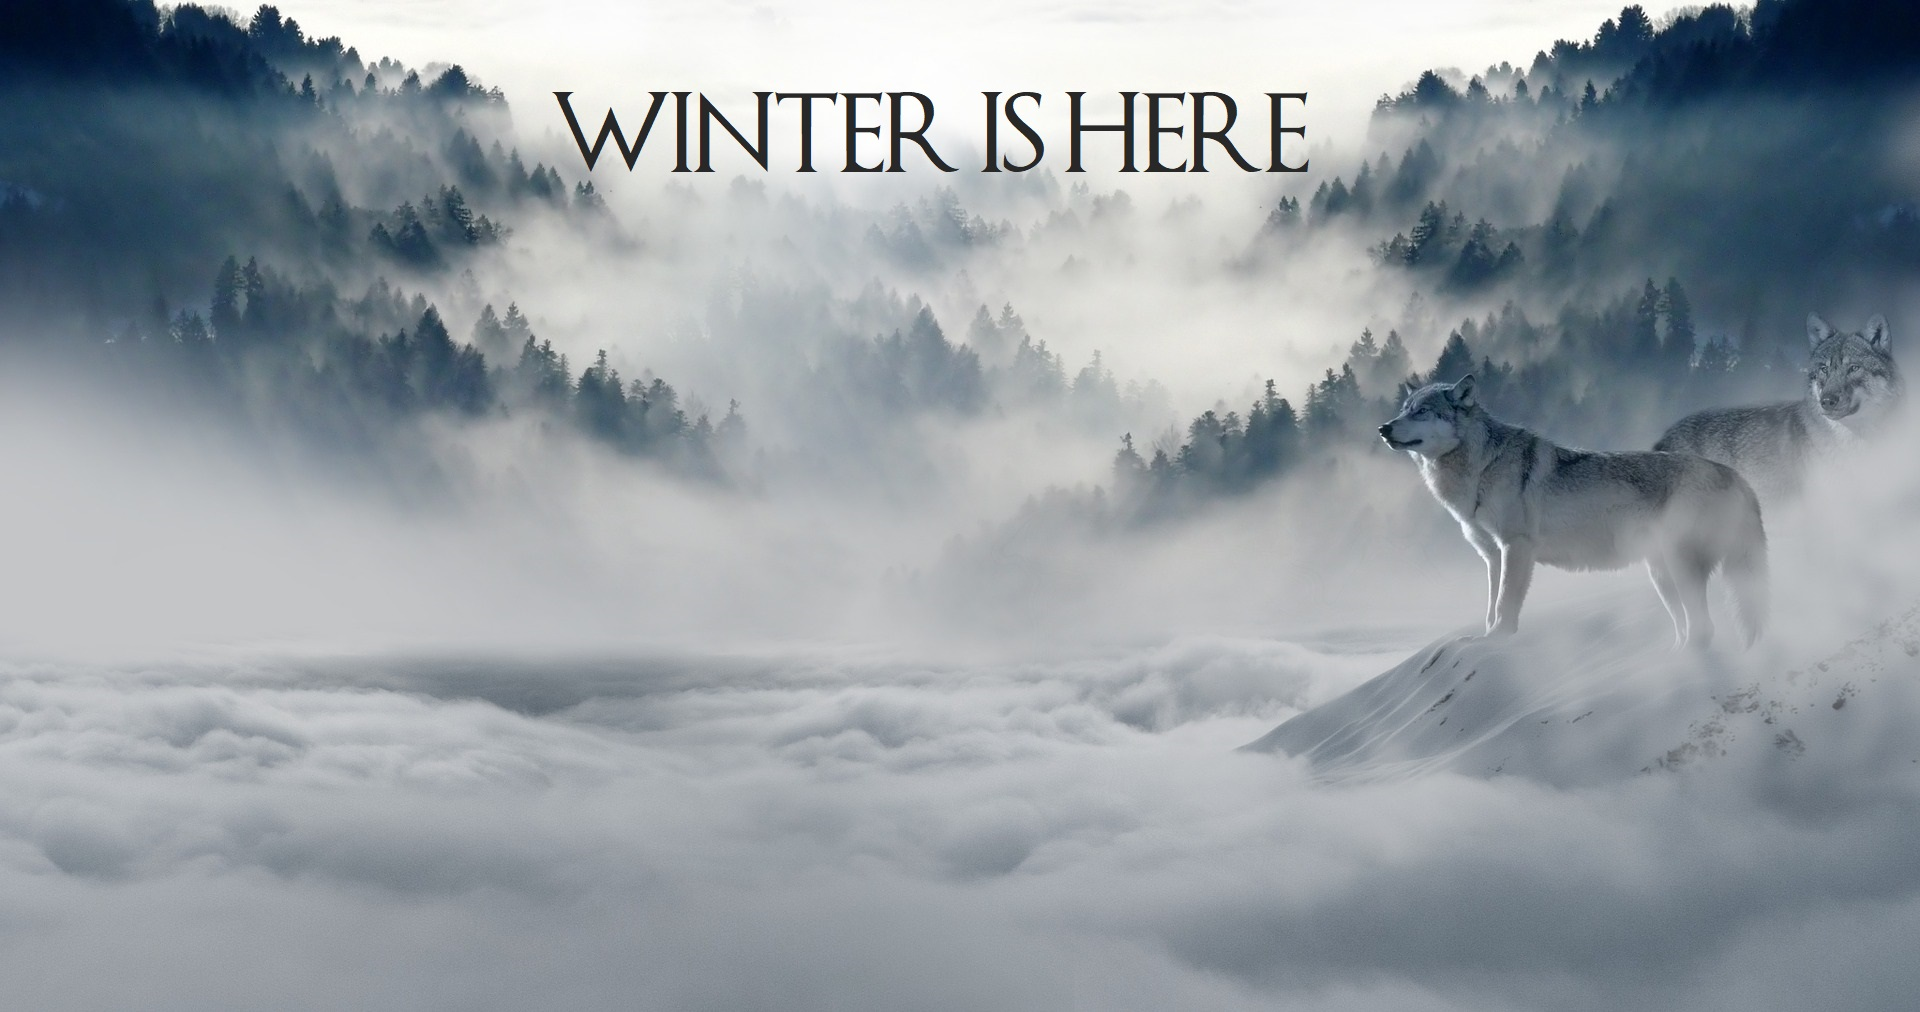 Winter is Here! And a few brands are trying to make the most of the GOT winter!